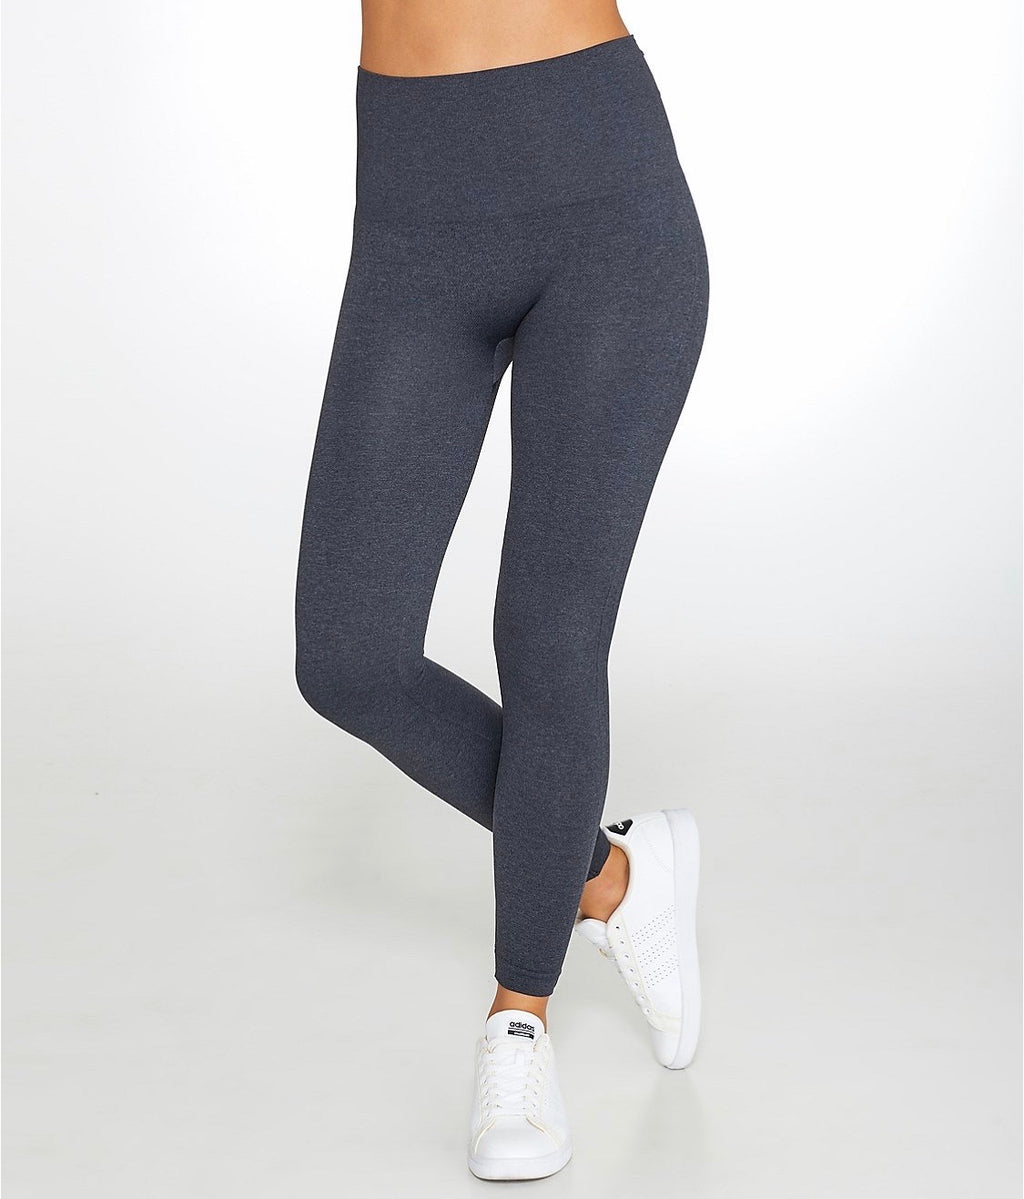 Spanx Look at me now seamless-heather grey